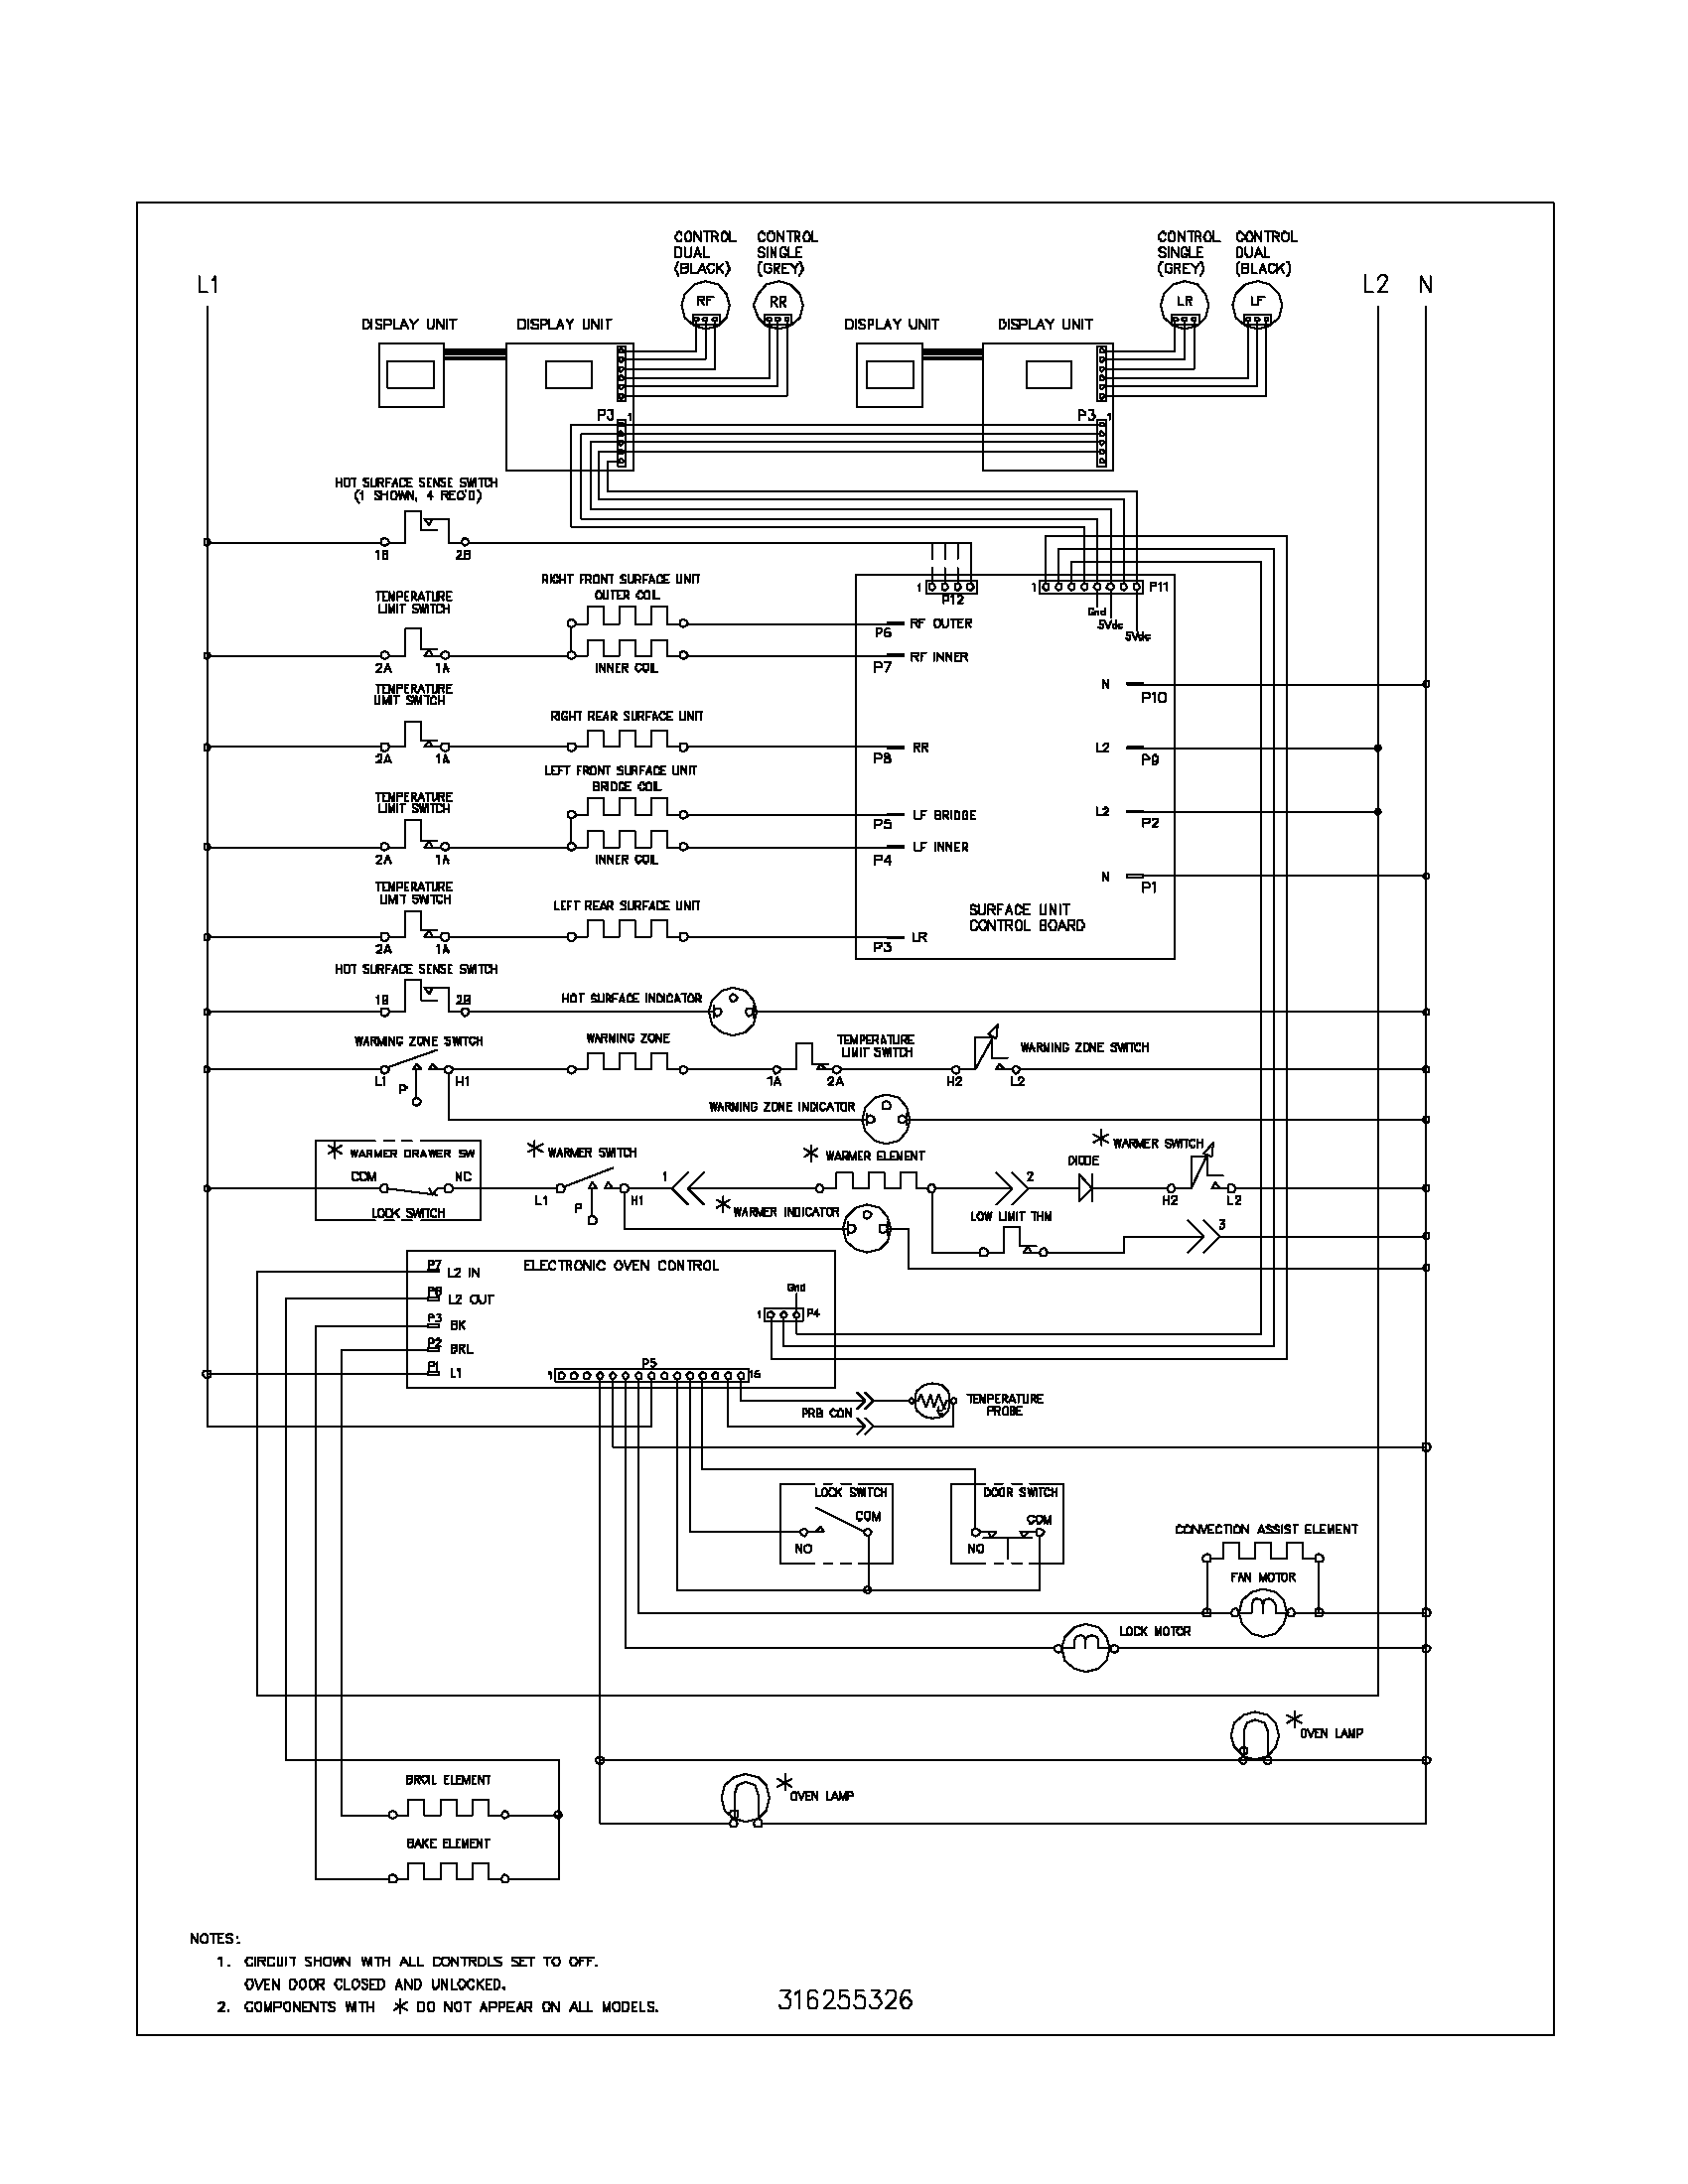 wiring schematic parts stove wiring diagram & name original wiring diagram jpg views  at bakdesigns.co